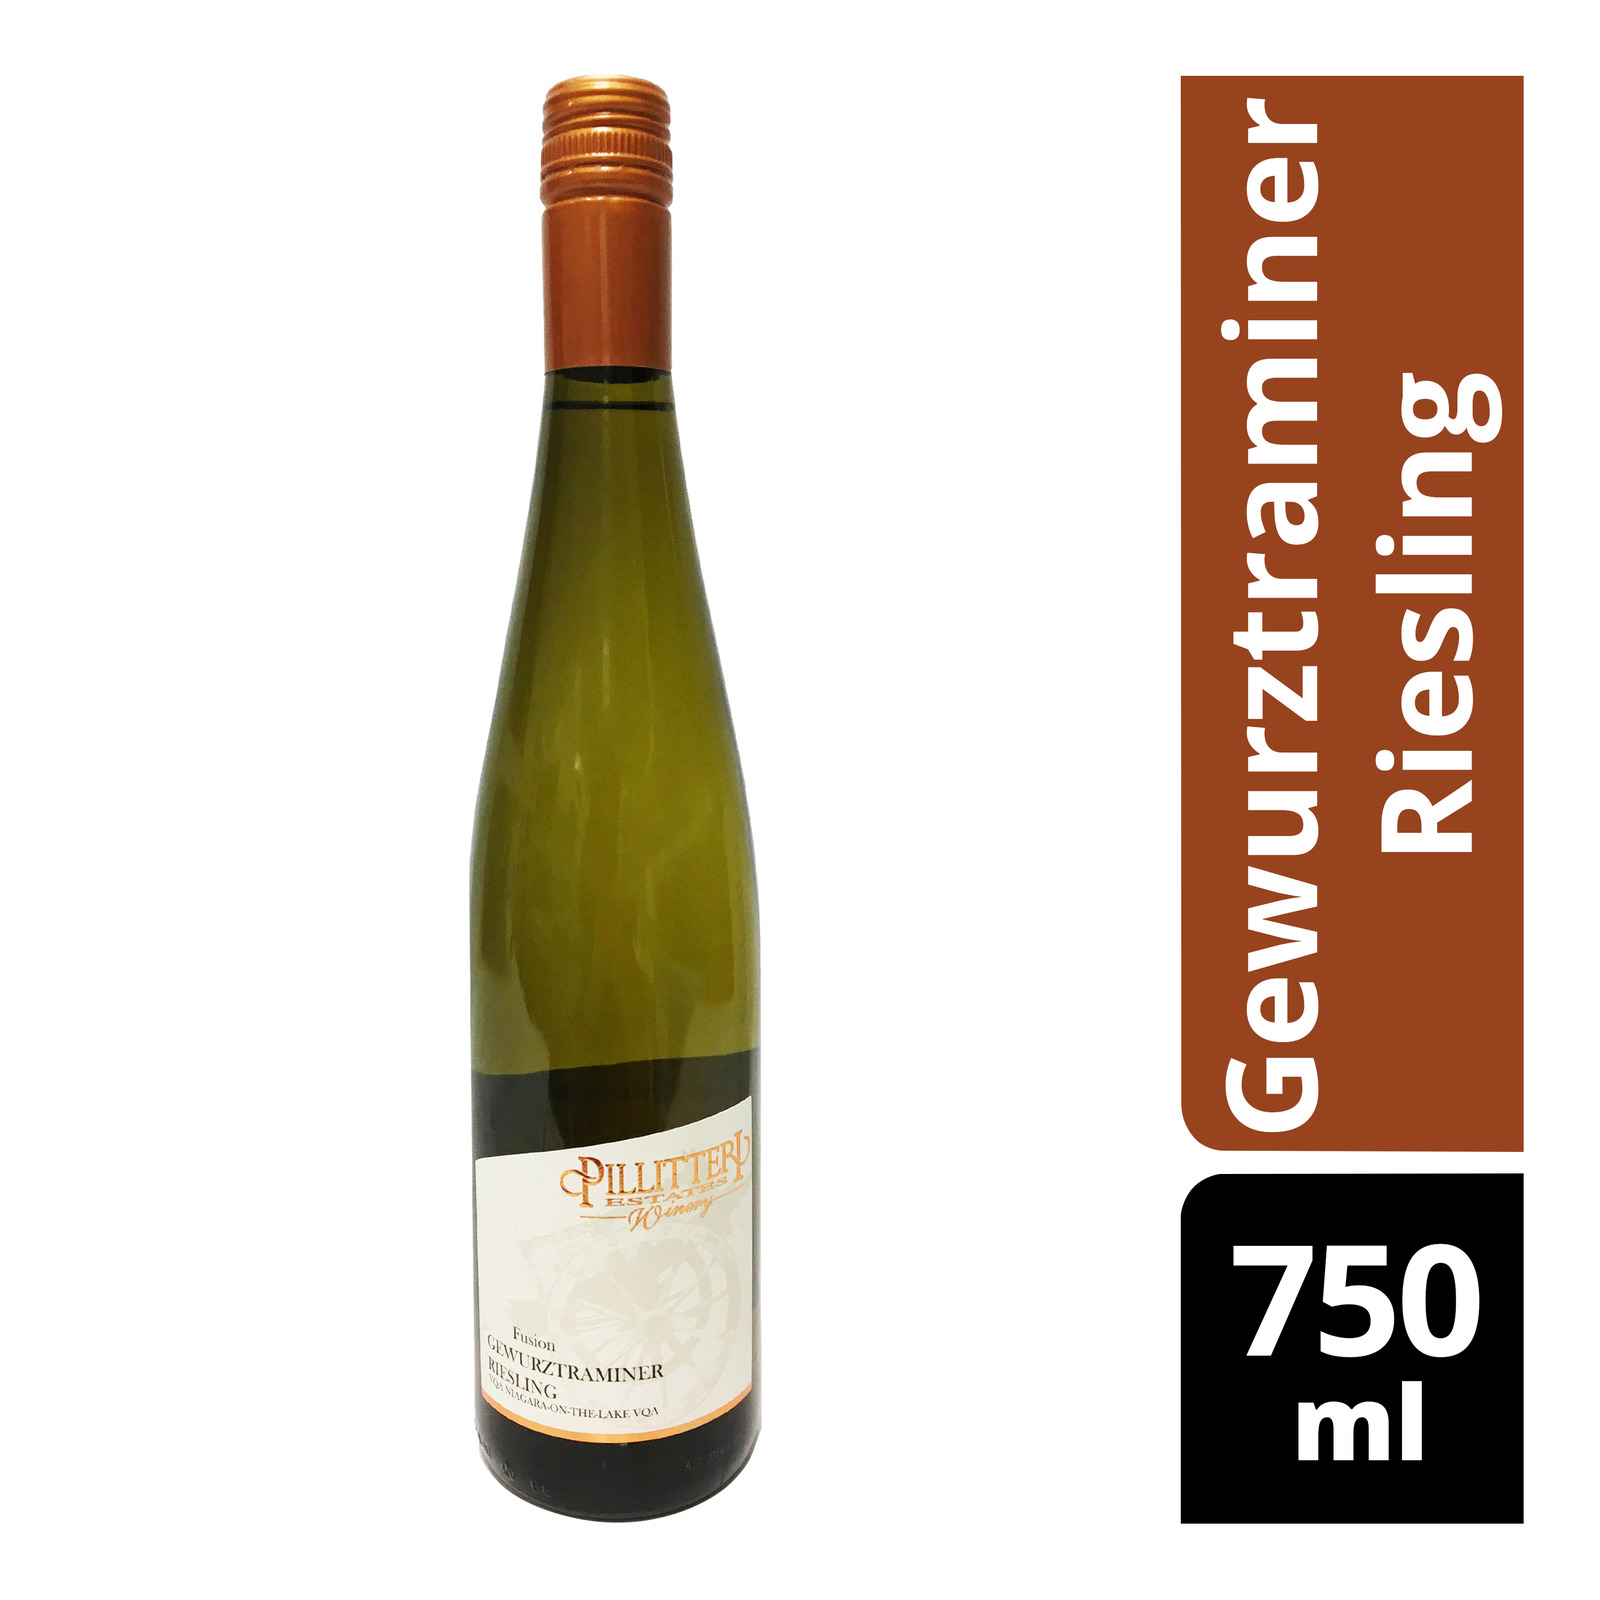 Pillitteri Estate Sweet Wine - Gewurztraminer Riesling